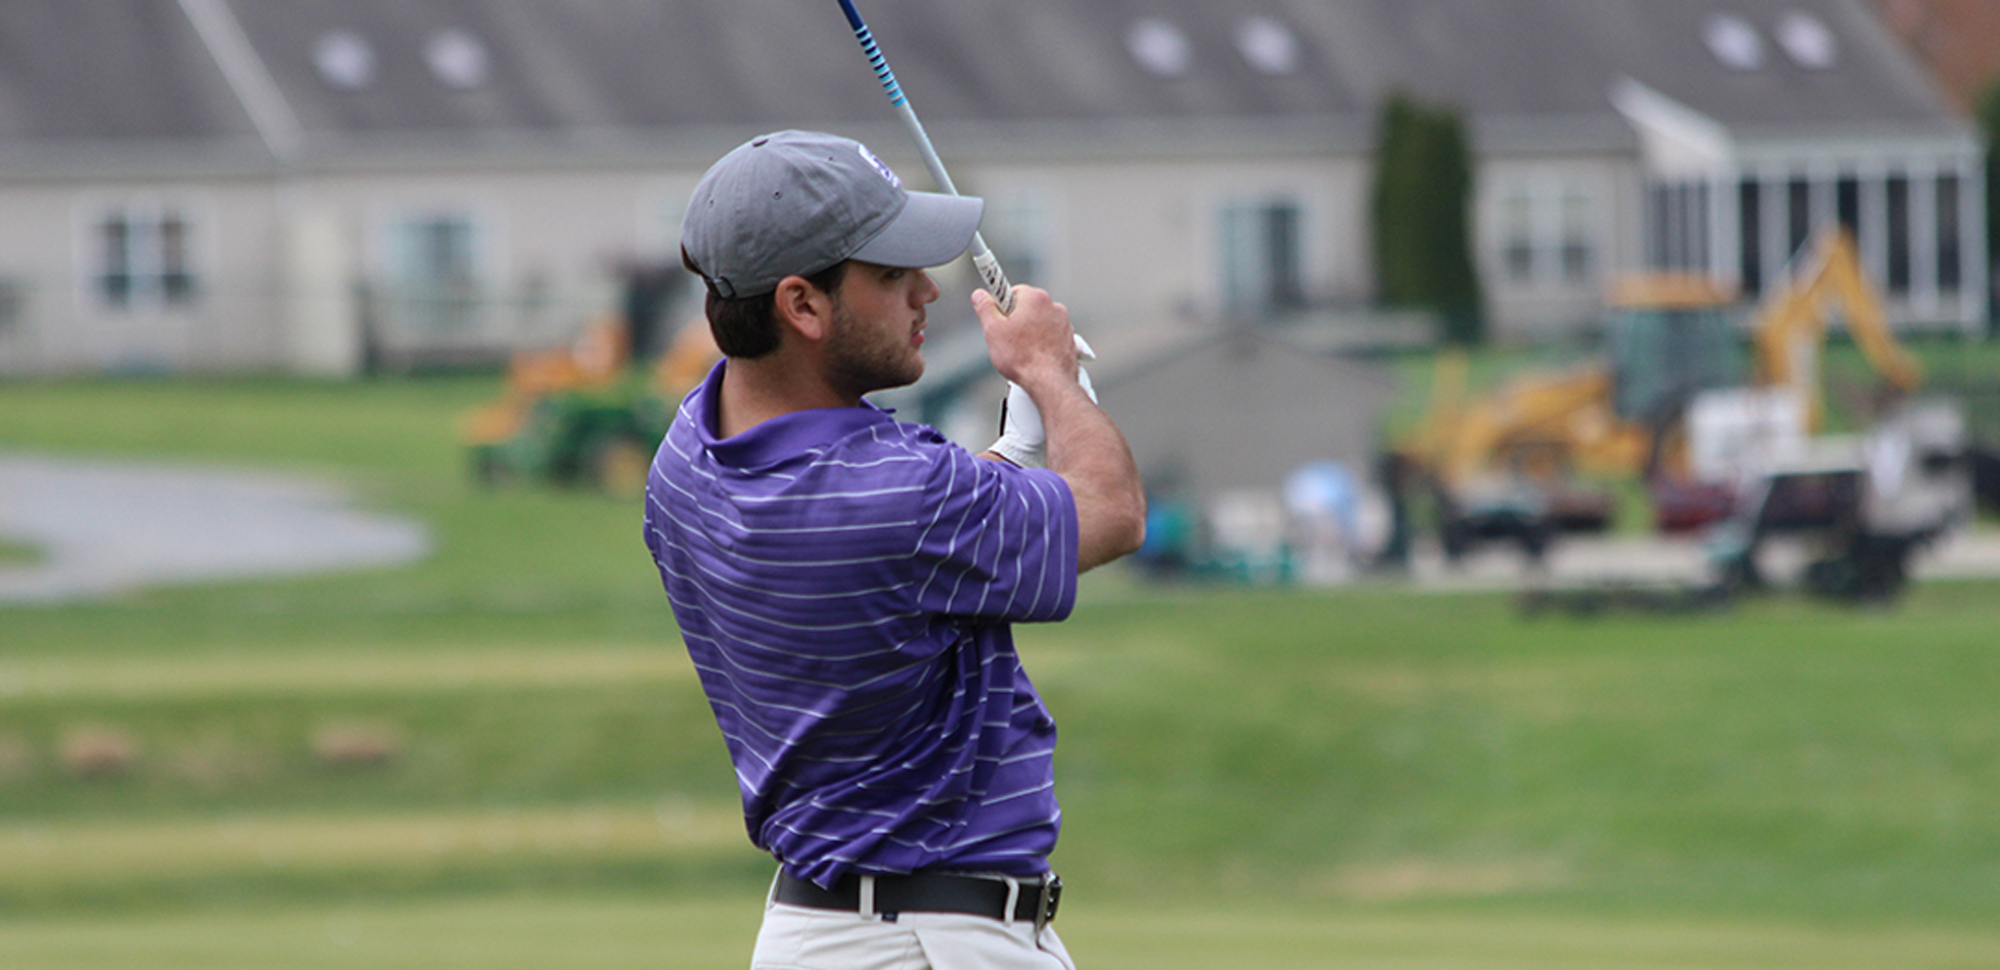 Senior Steven Lambrinakos shot a career-low 75 on Thursday, April 20, to lead the Royals past King's and Wilkes.